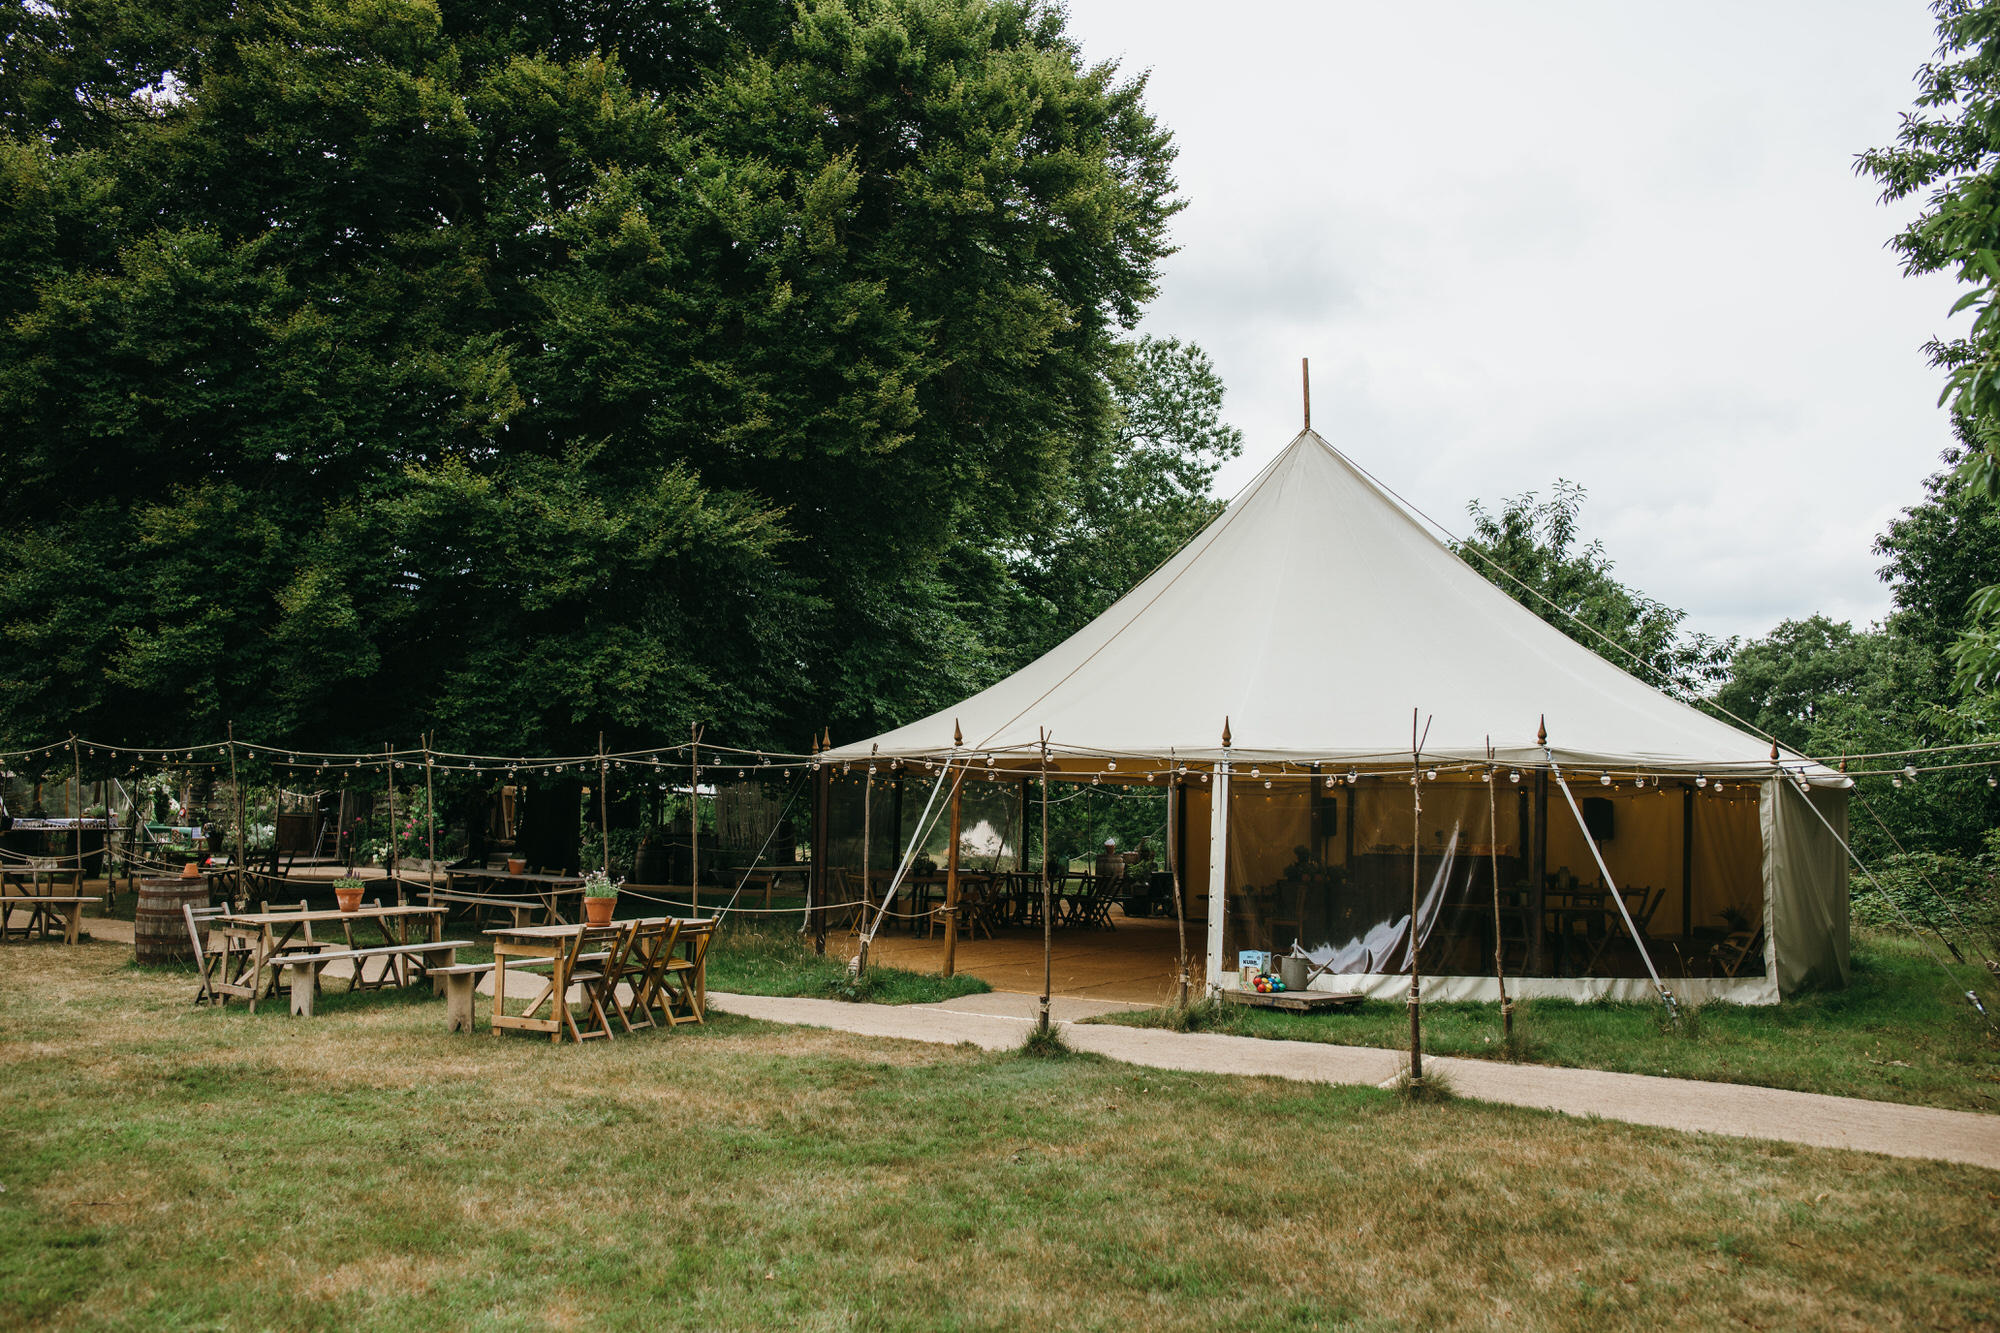 The dreys wedding marquee